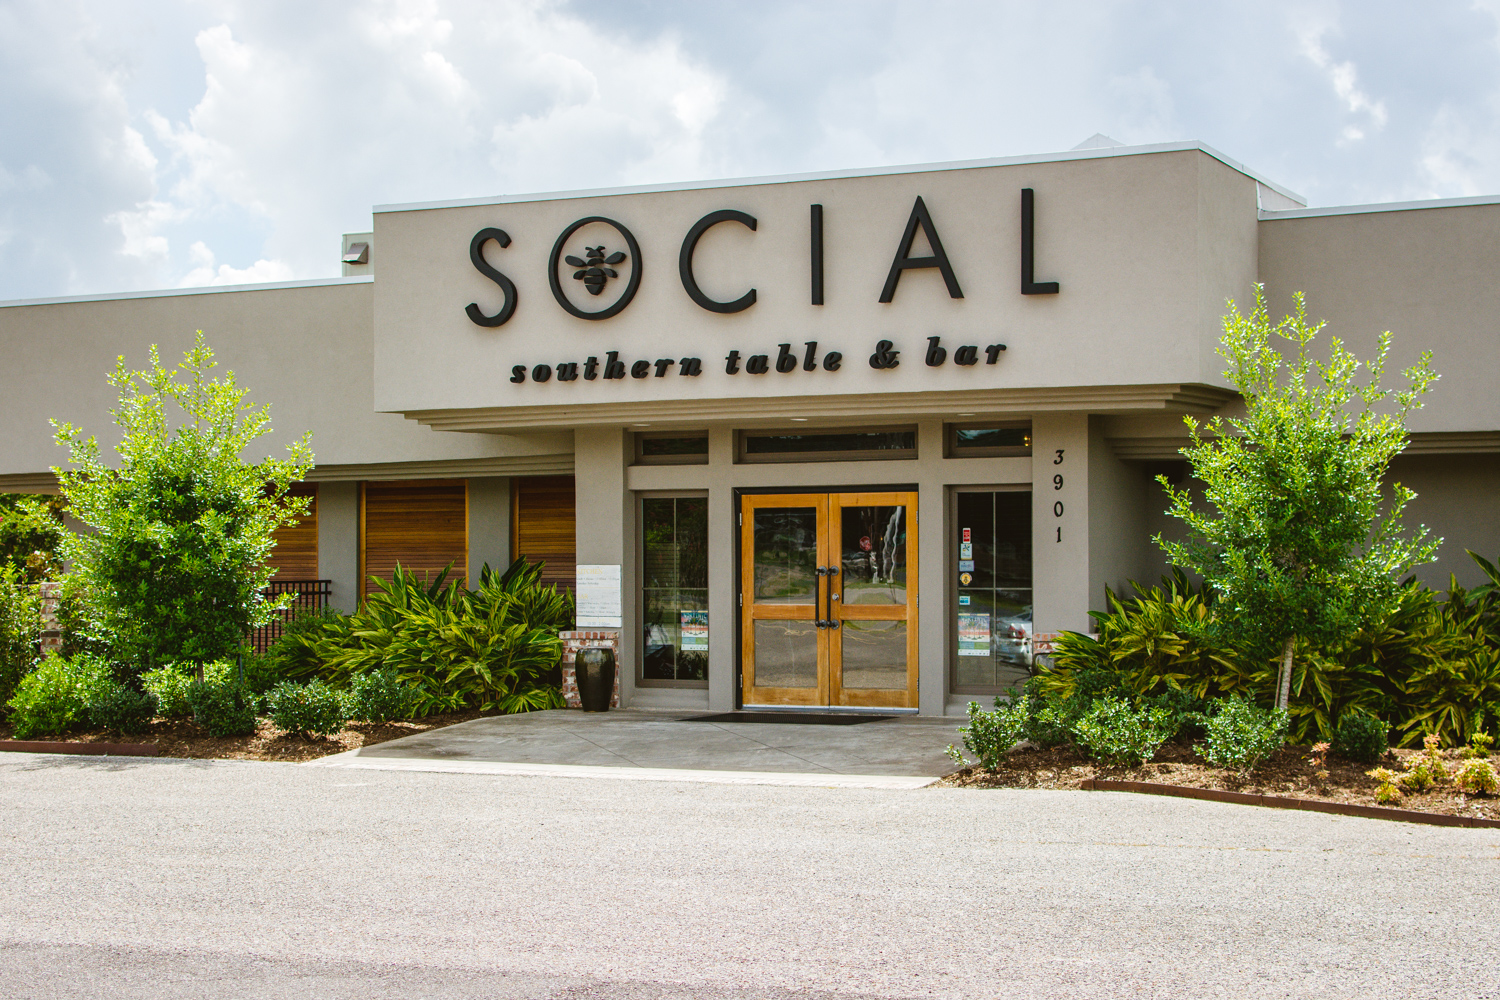 Social Southern Table & Bar Lafayette, LA